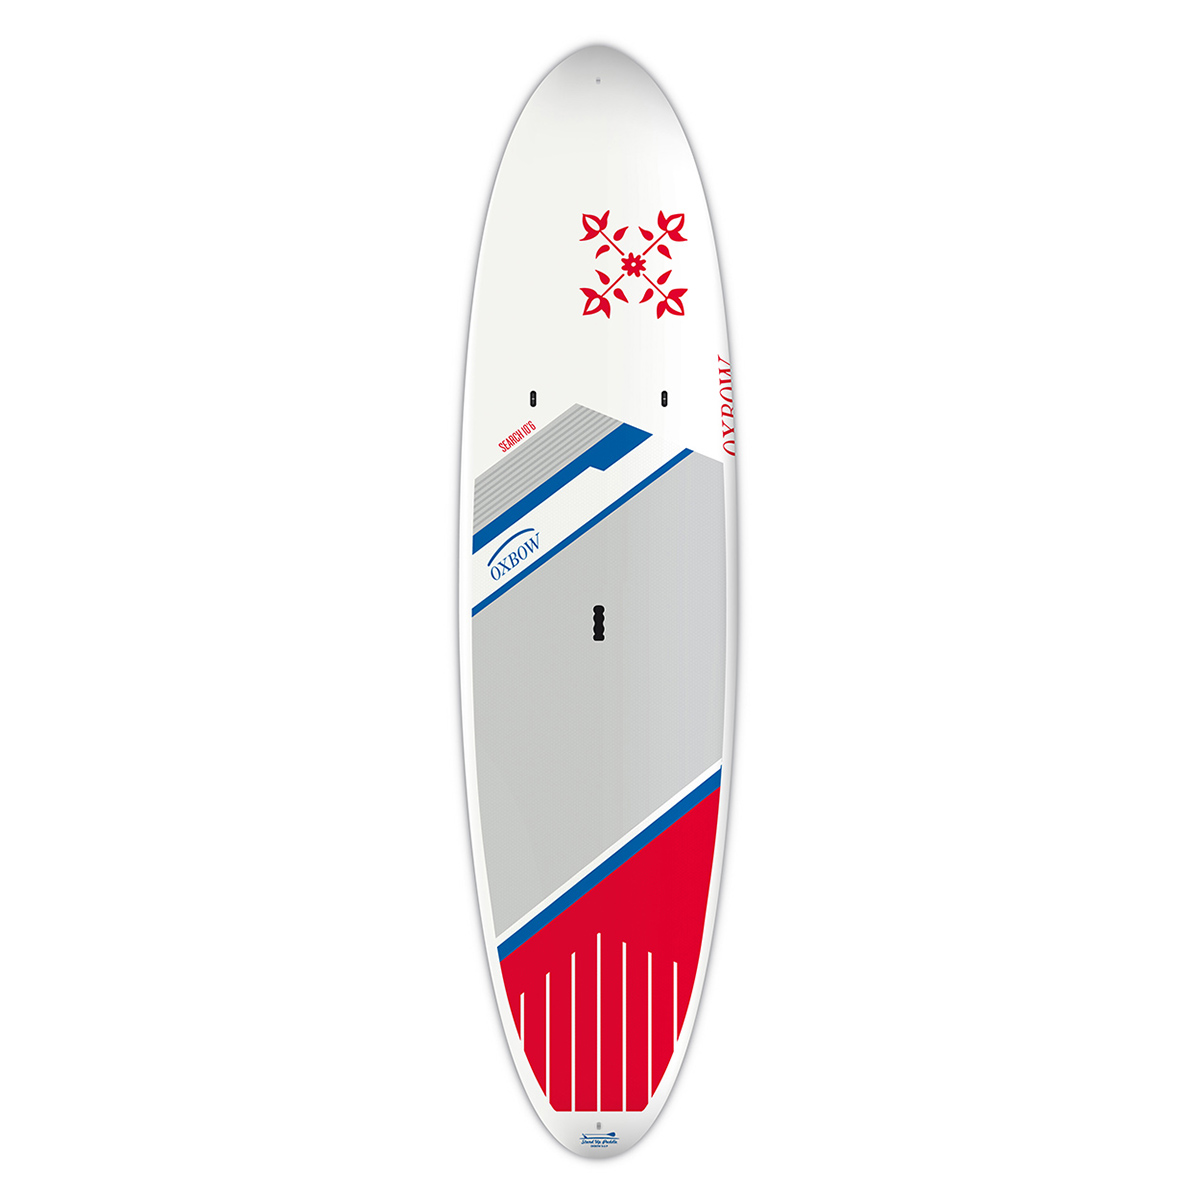 Oxbow-ACE-TEC-SEARCH-116--SUP-wFiberglass-Paddle---SALE-PRICE-899.95_119440A.jpg